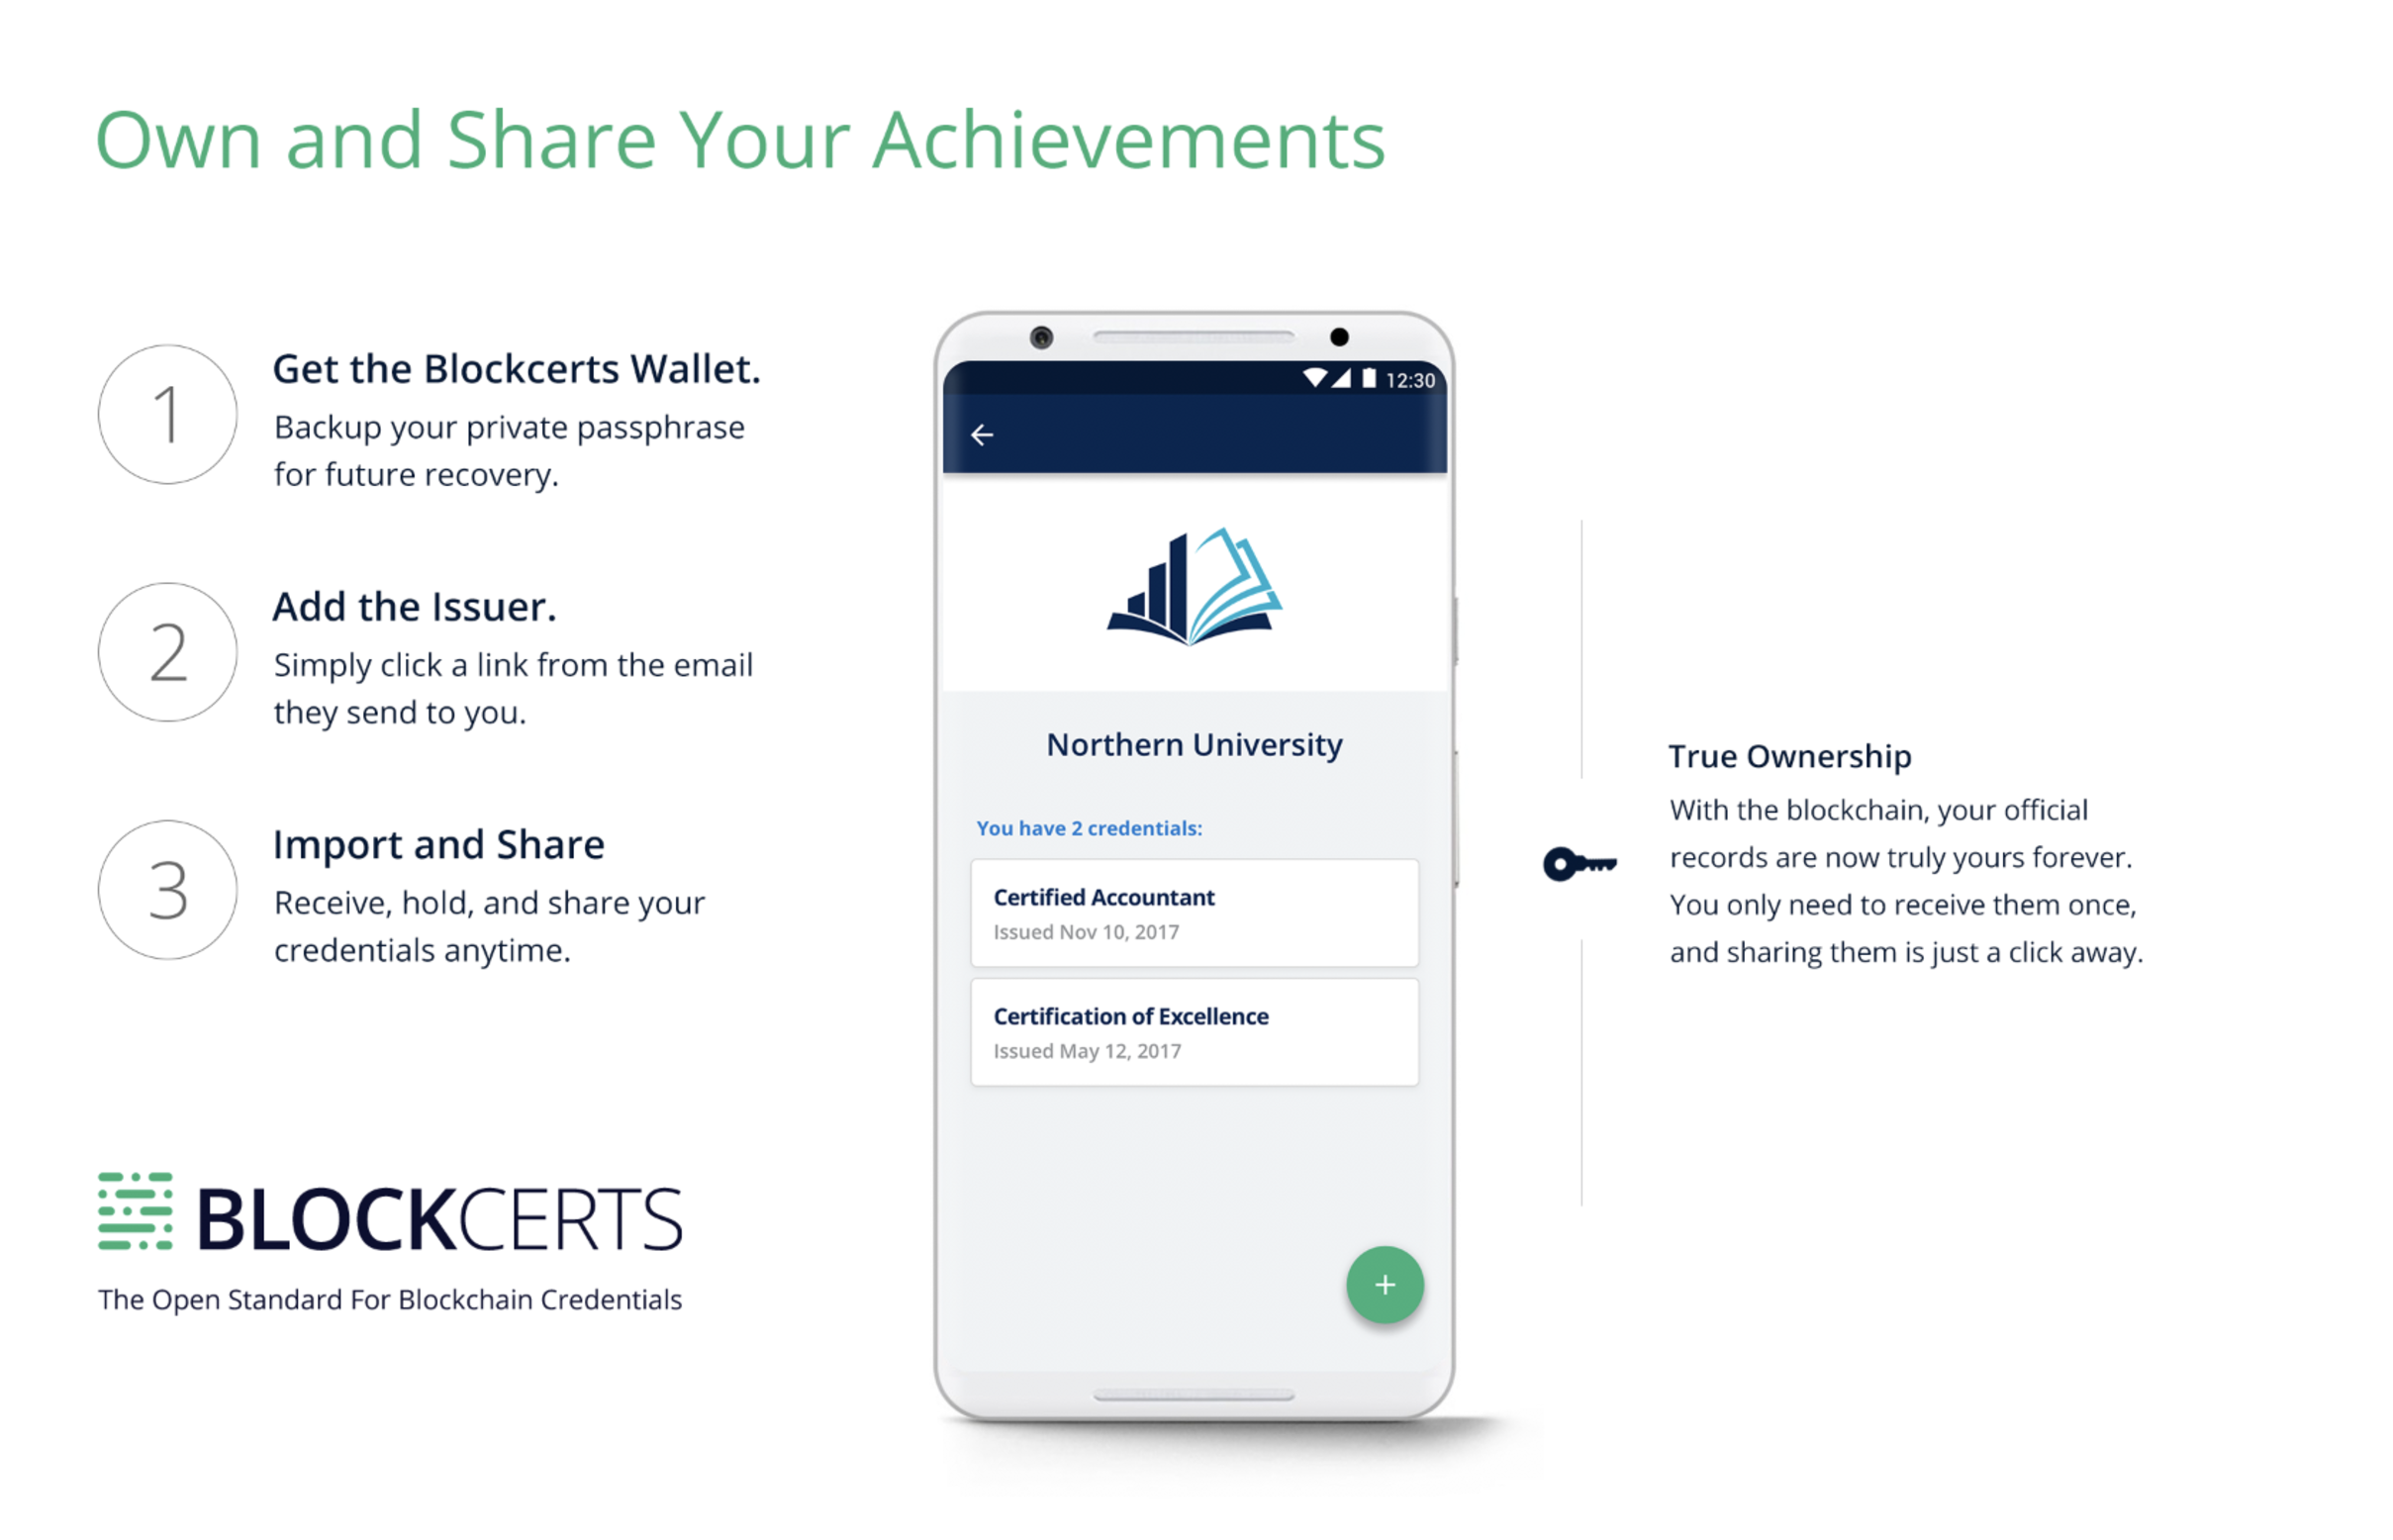 The New Blockcerts Mobile App - Learning Machine - Medium